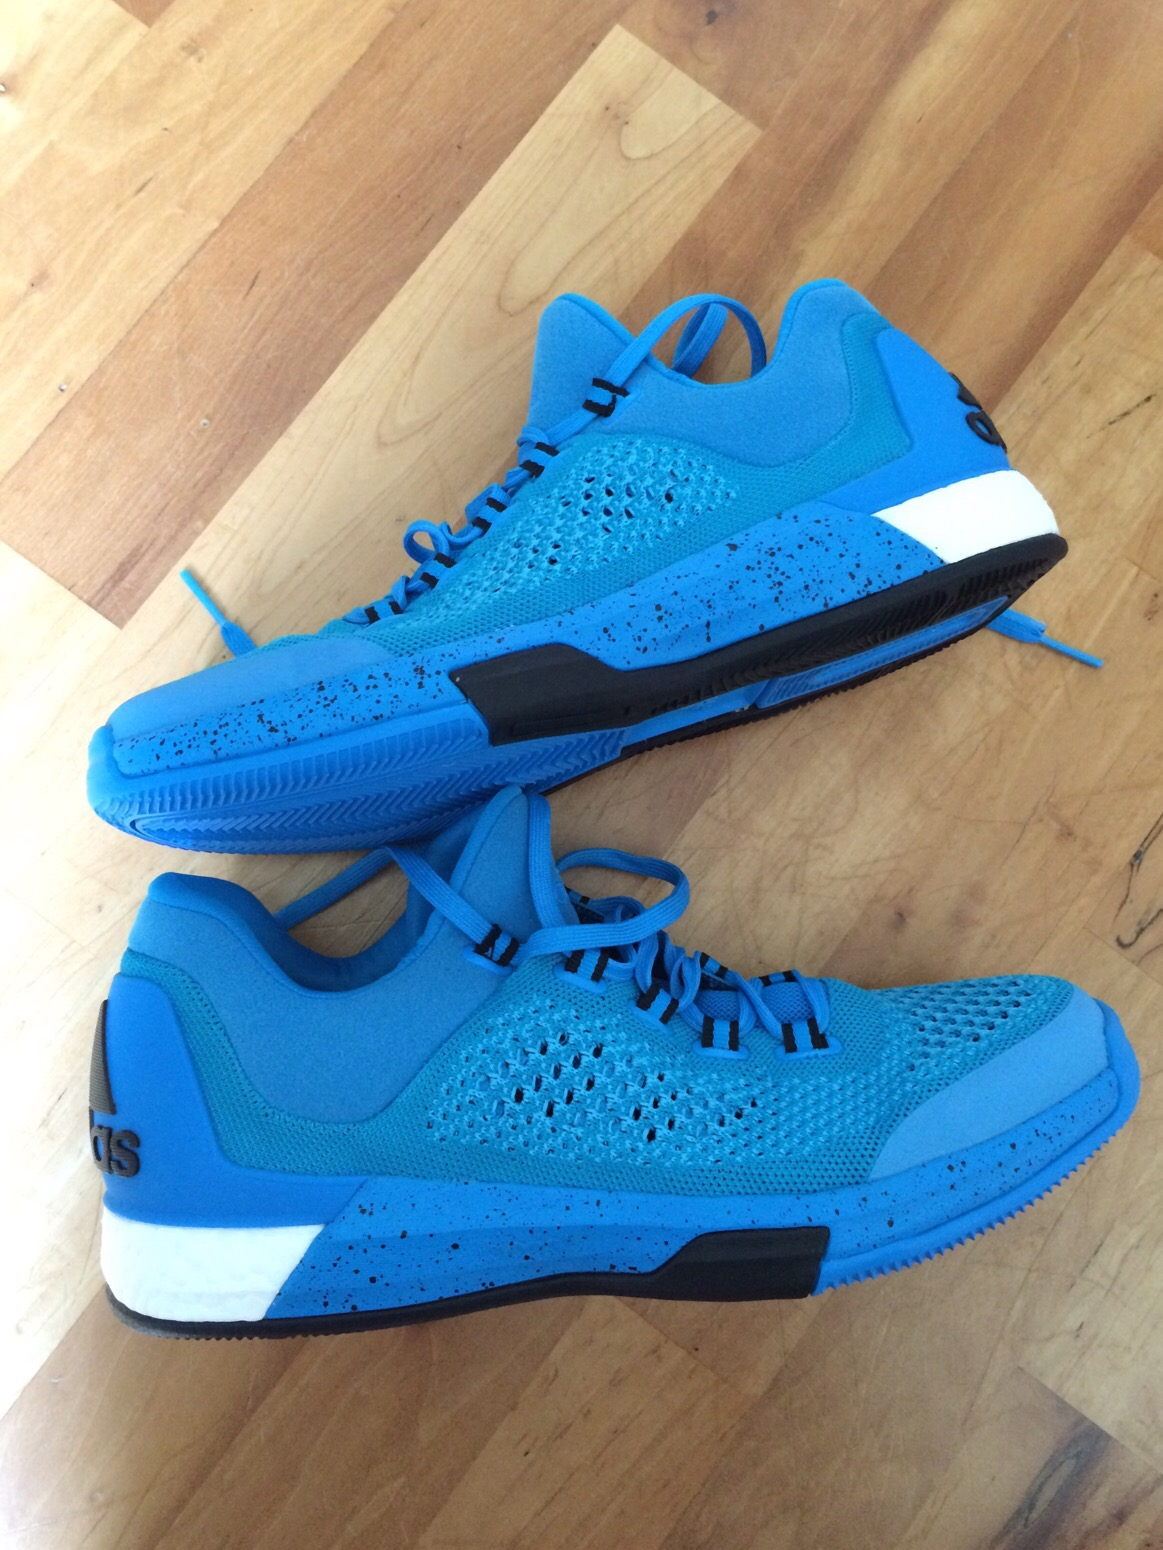 adidas 2015 crazylight boost review